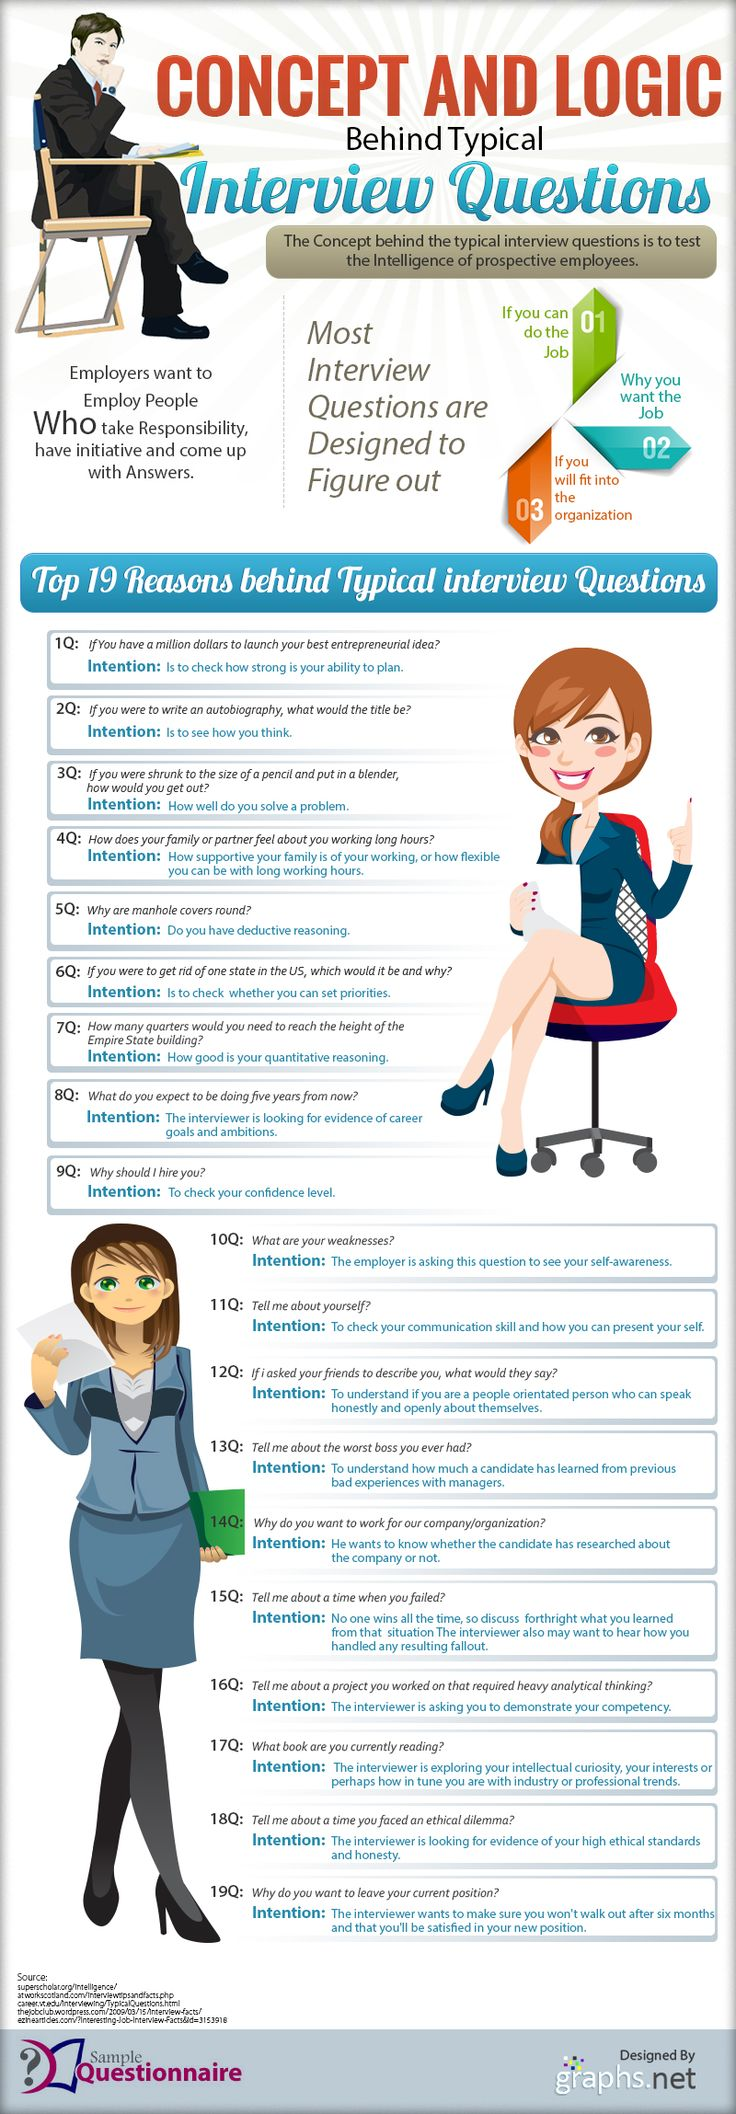 17 best images about interview tips tricks 17 best images about interview tips tricks interview prepare for interview and body language